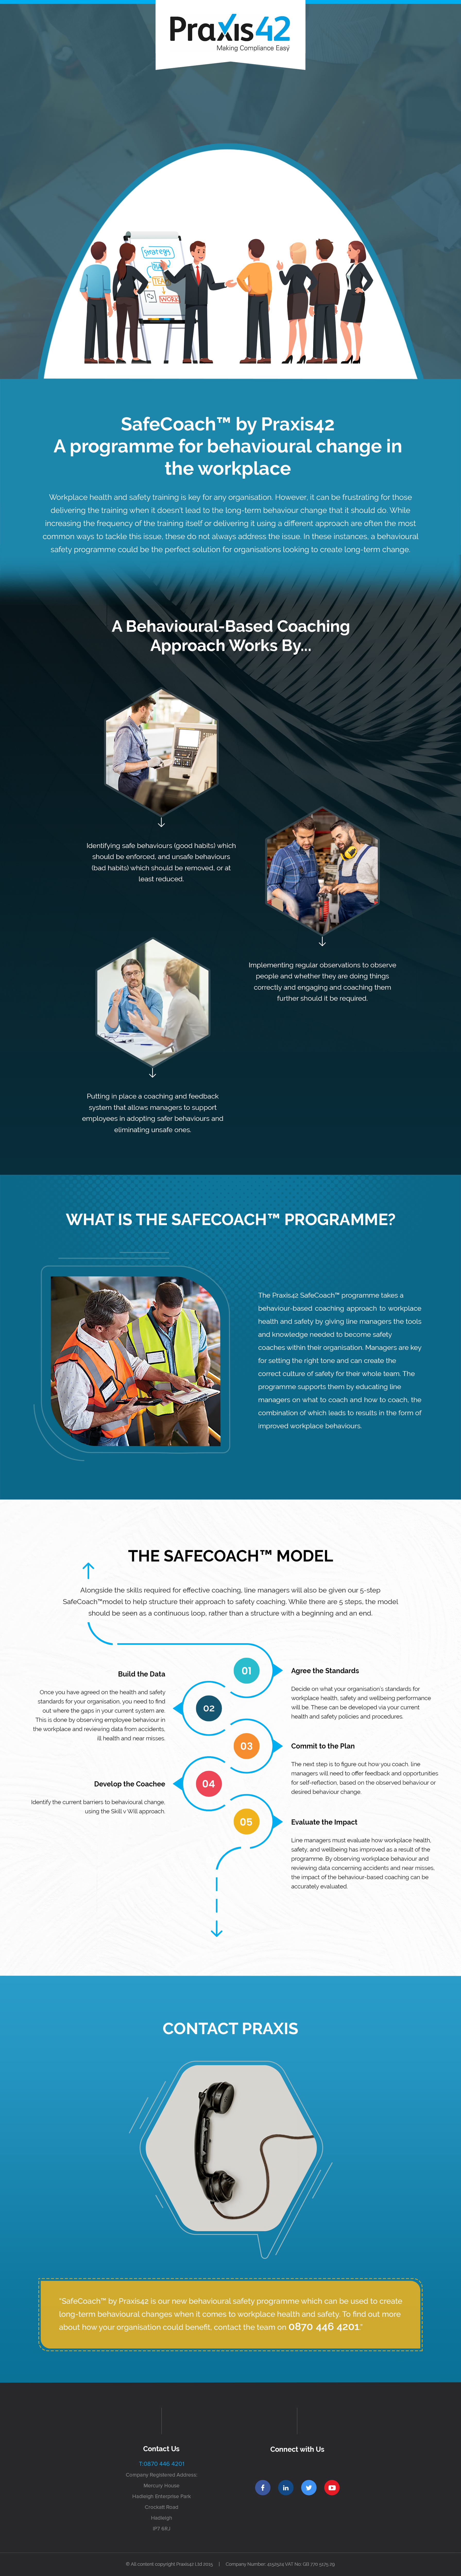 Safecoach infographic